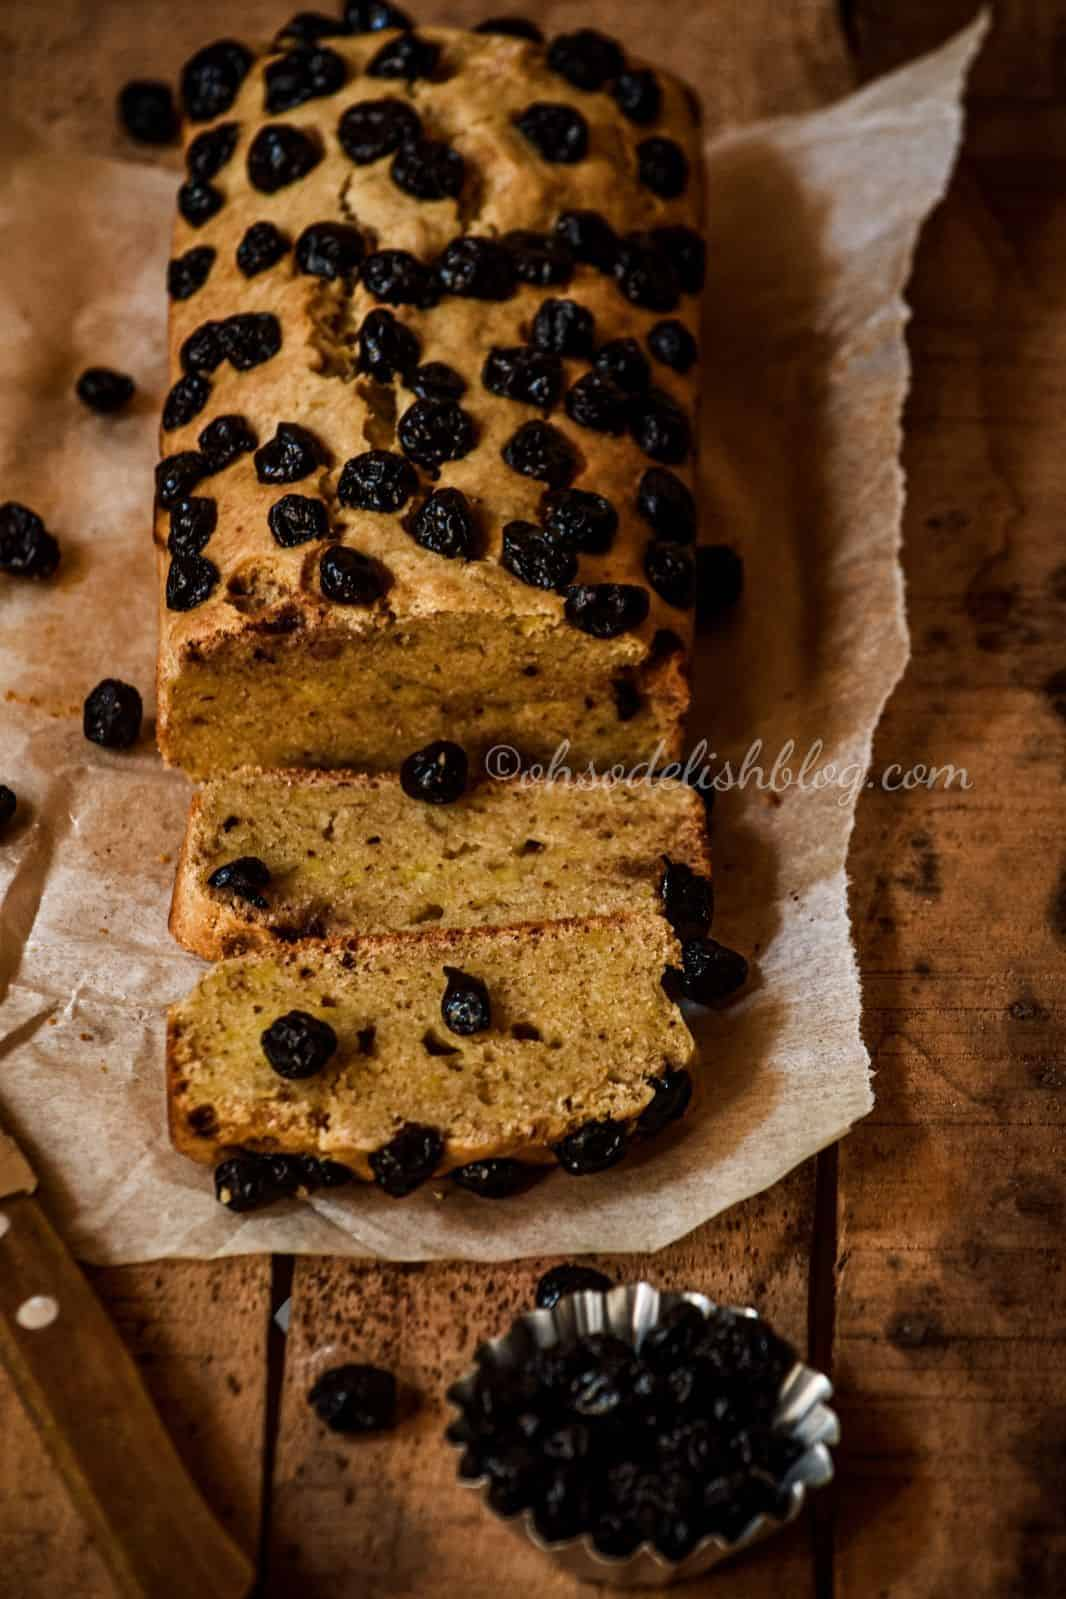 Wholewheat banana bread with blueberries